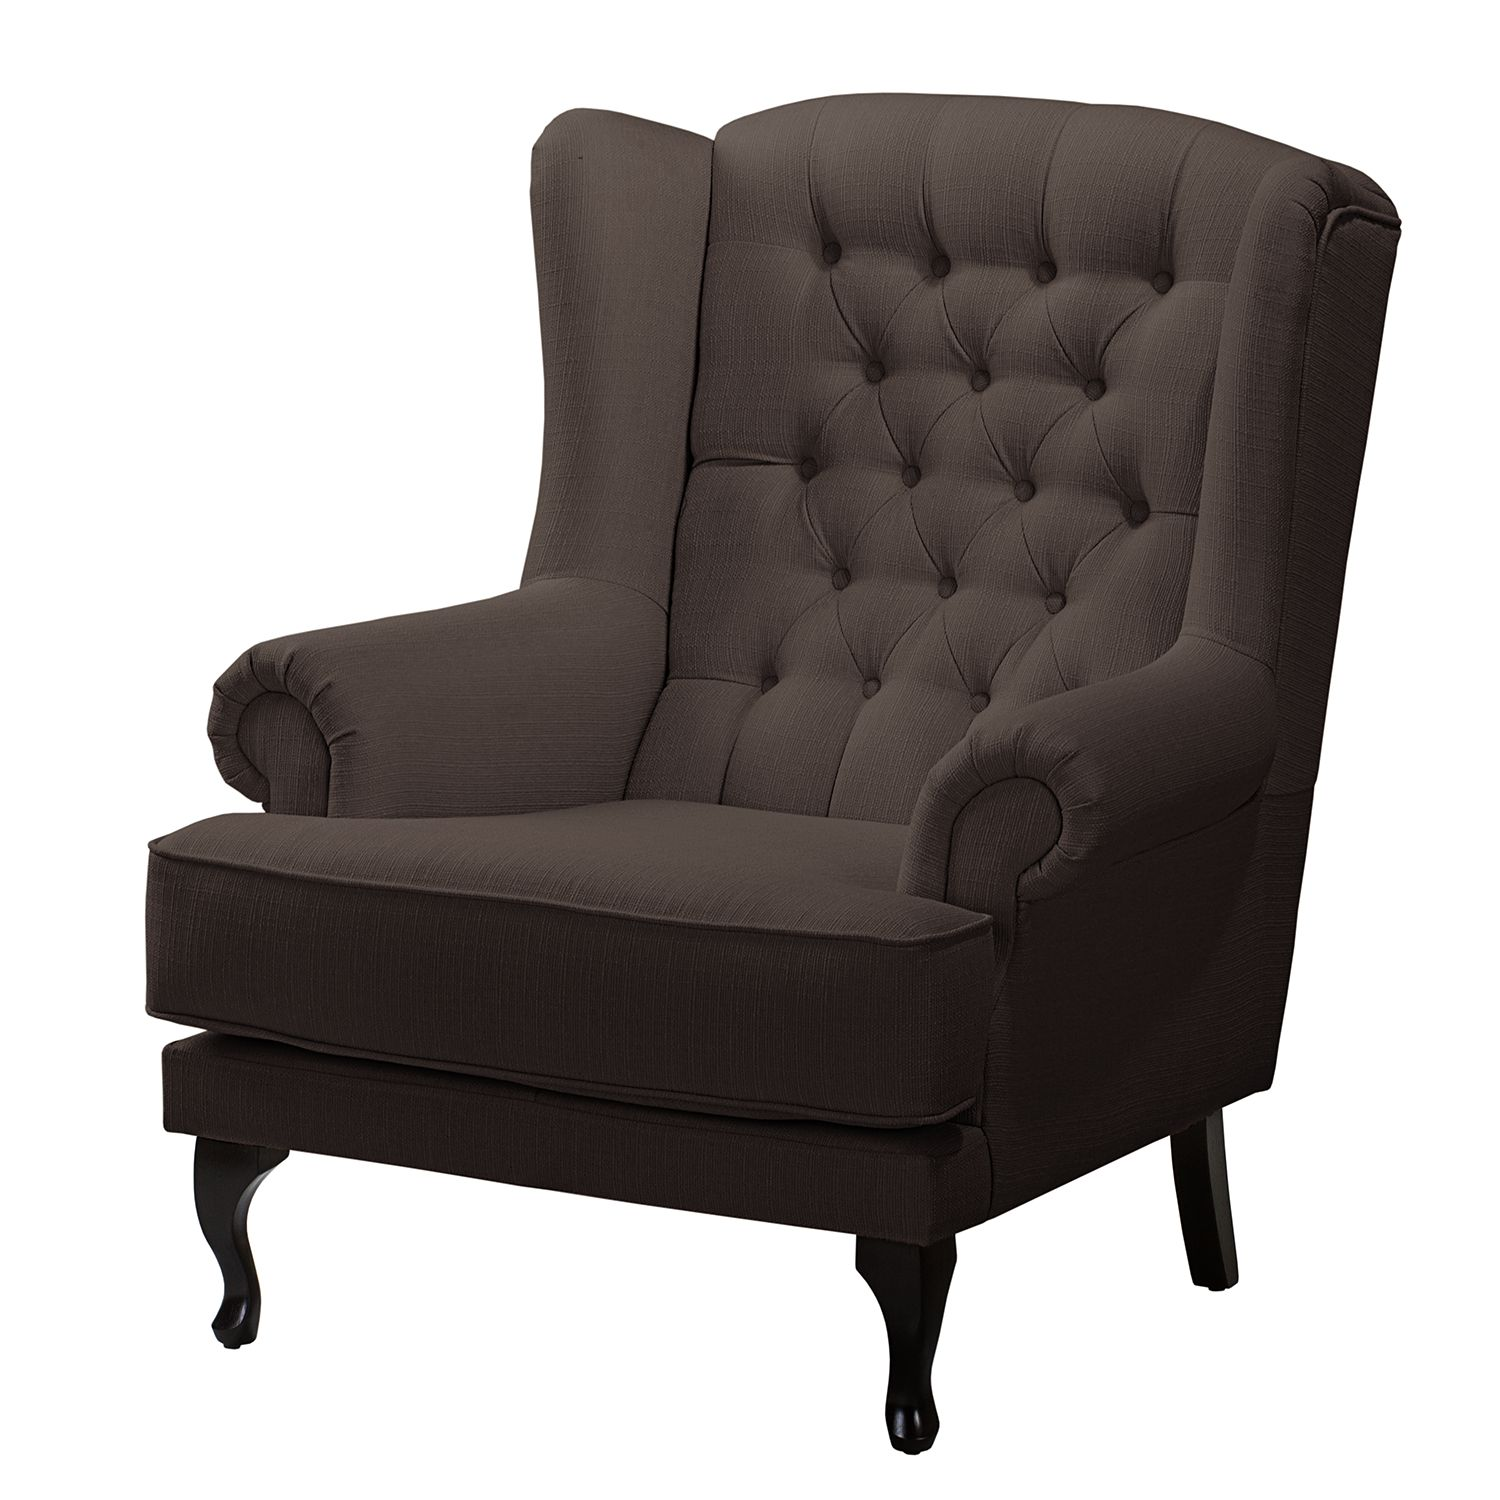 Home24 oorfauteuil miscol geweven stof zonder hocker for Home 24 sessel